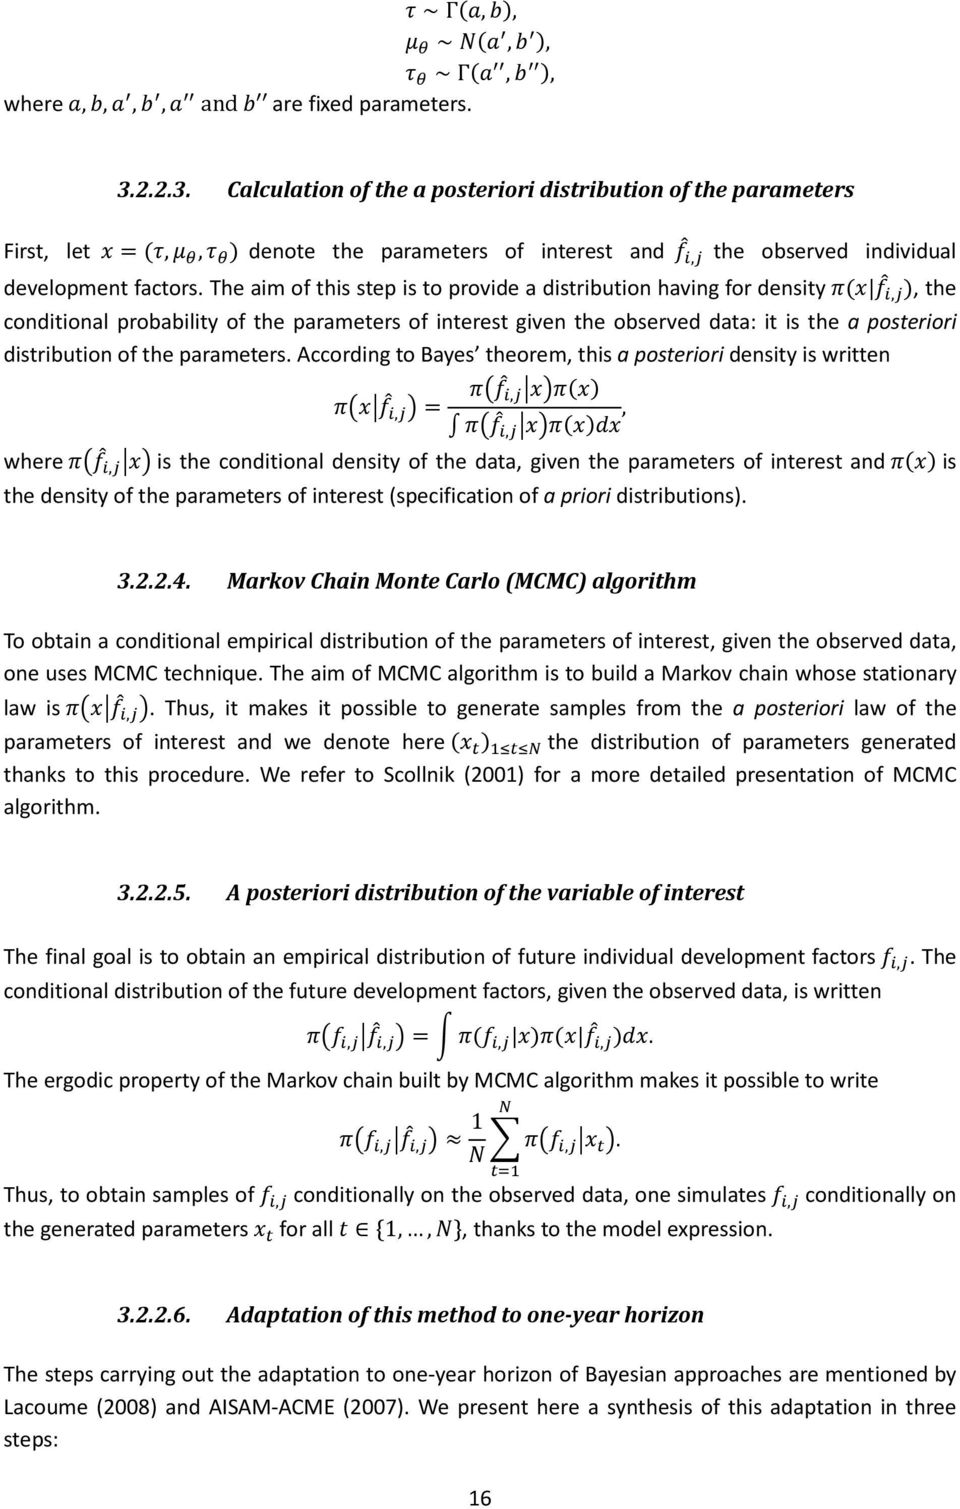 The aim of this step is to provide a distribution having for density,, the conditional probability of the parameters of interest given the observed data: it is the a posteriori distribution of the